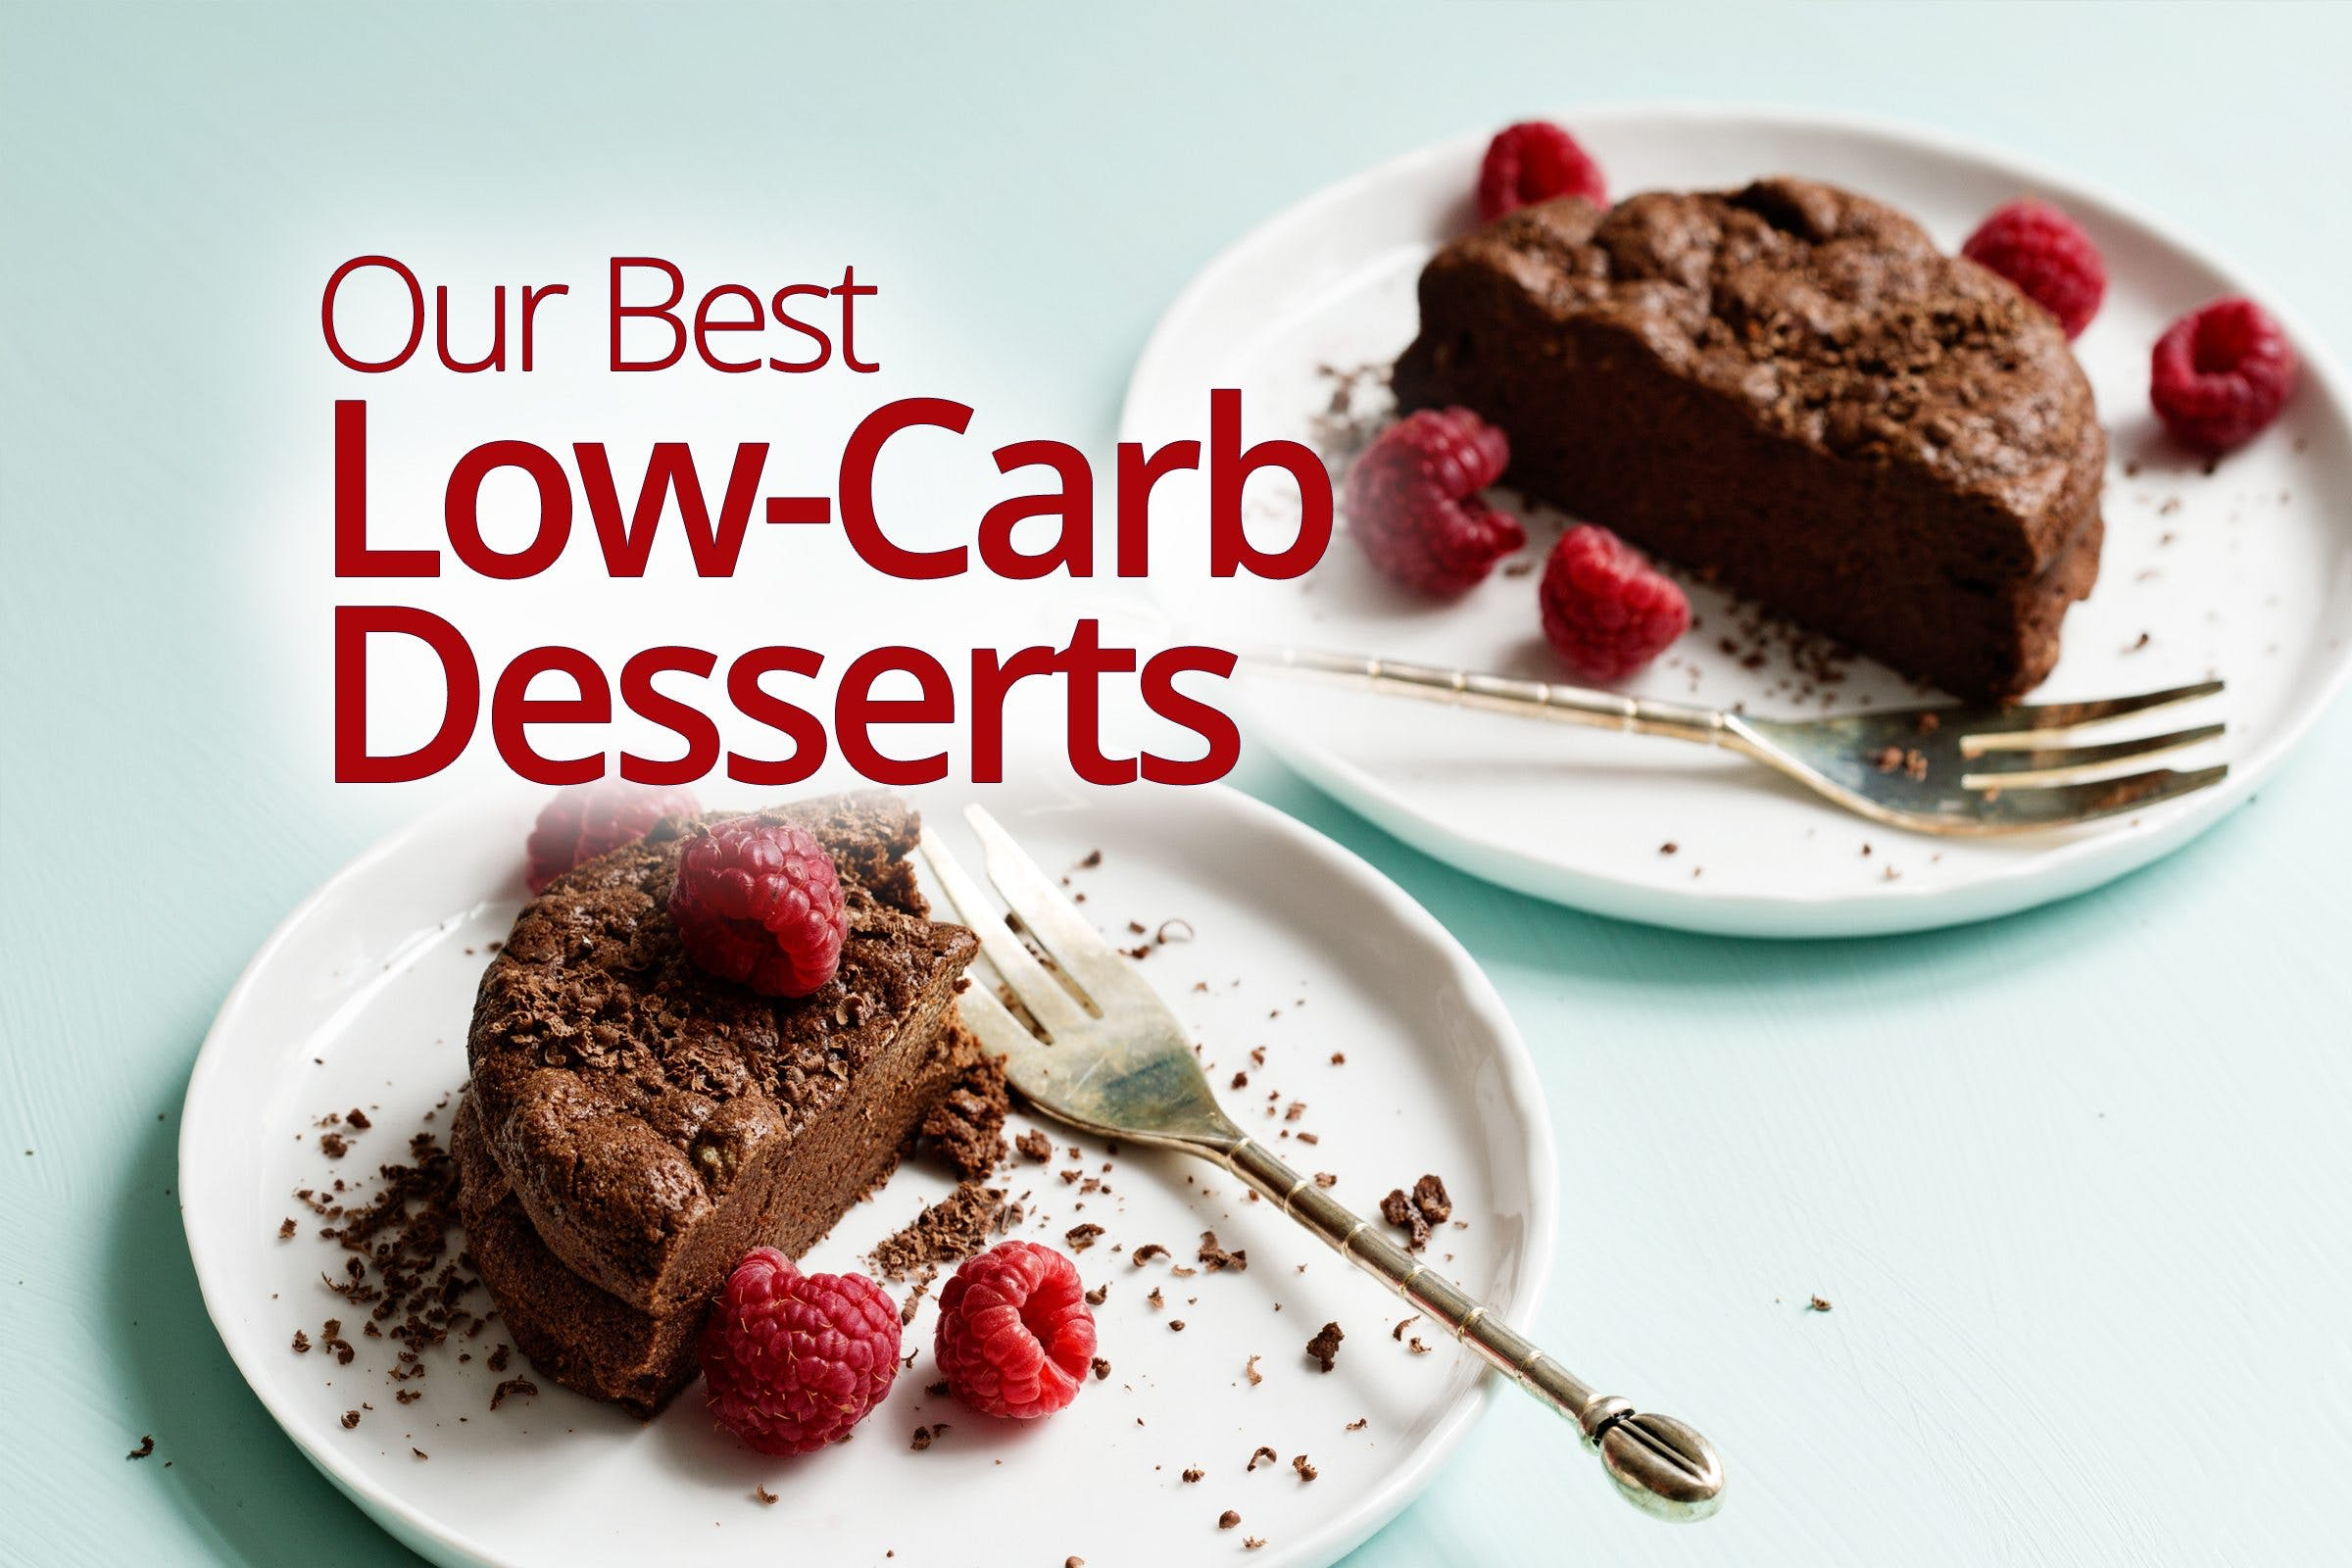 Our best low-carb desserts